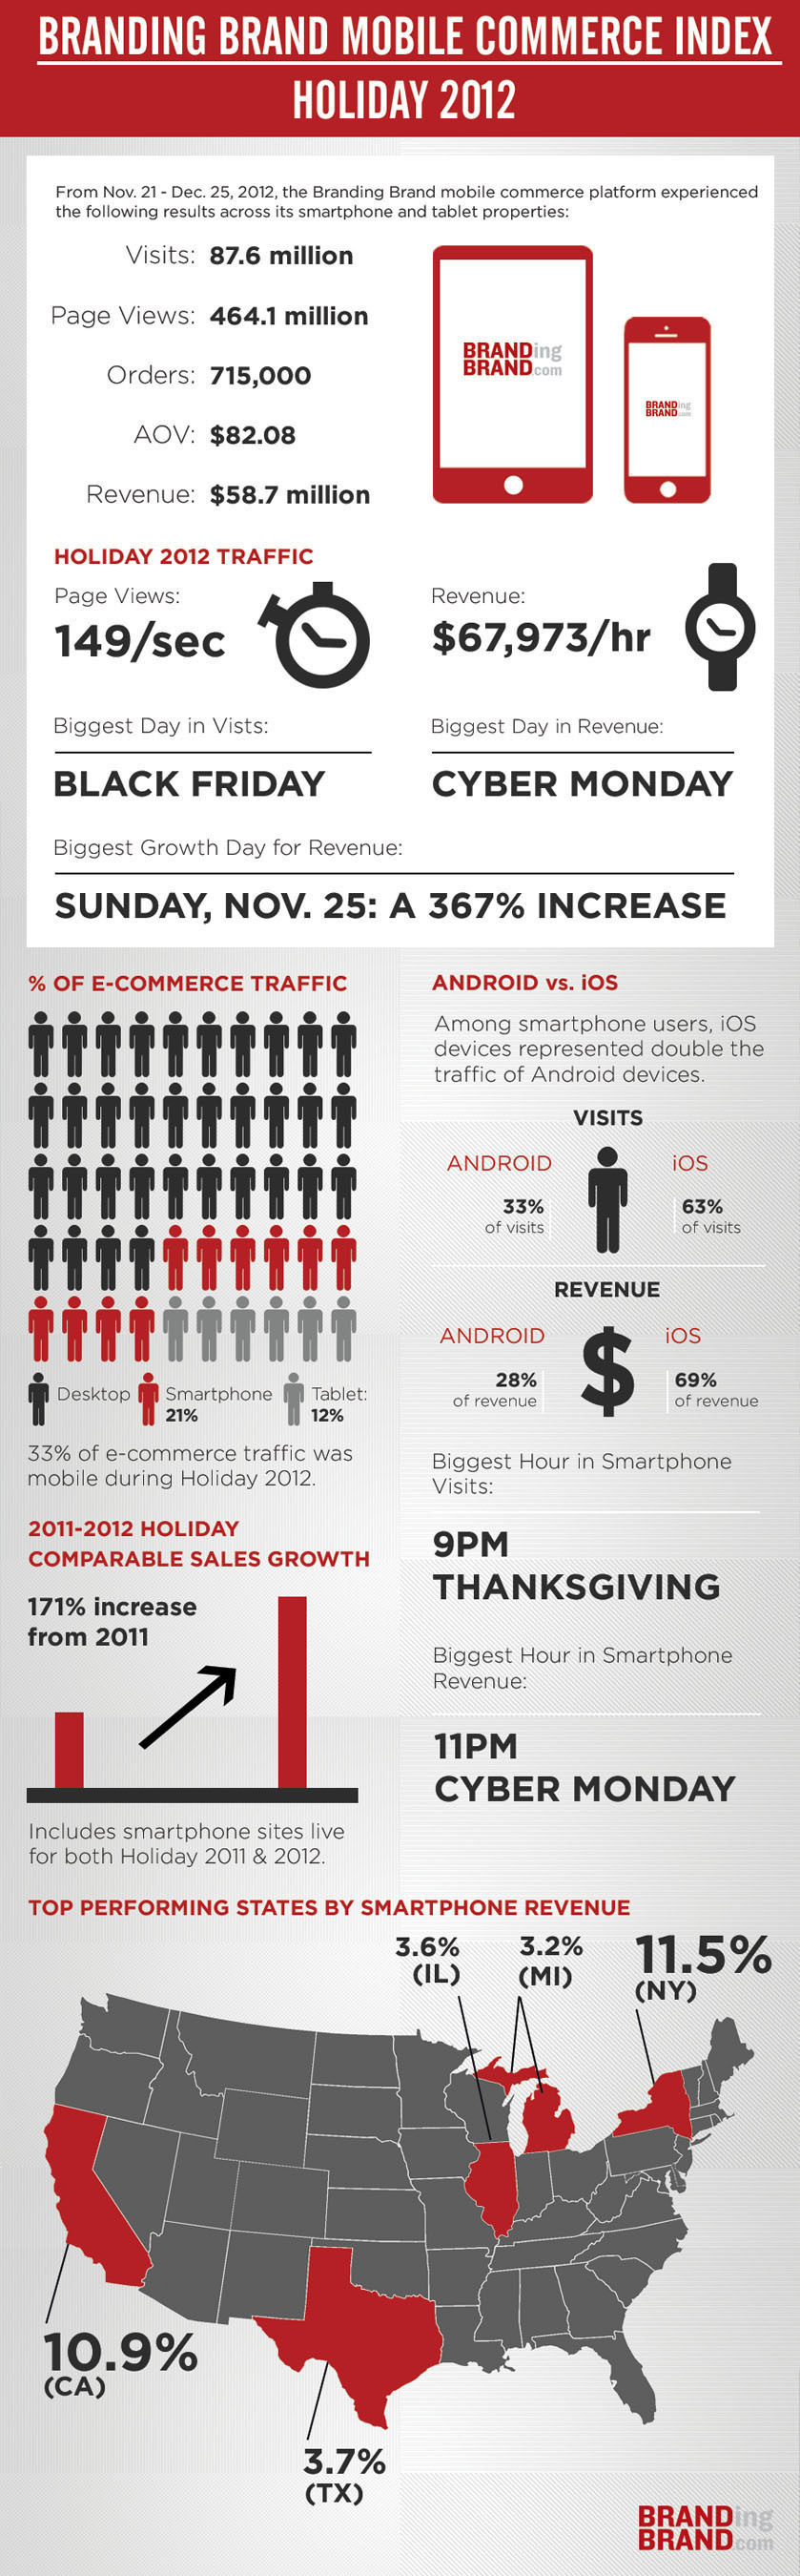 Branding Brand Mobile Commerce Index Shows Holiday Sales up 171%, Conversion up 30%